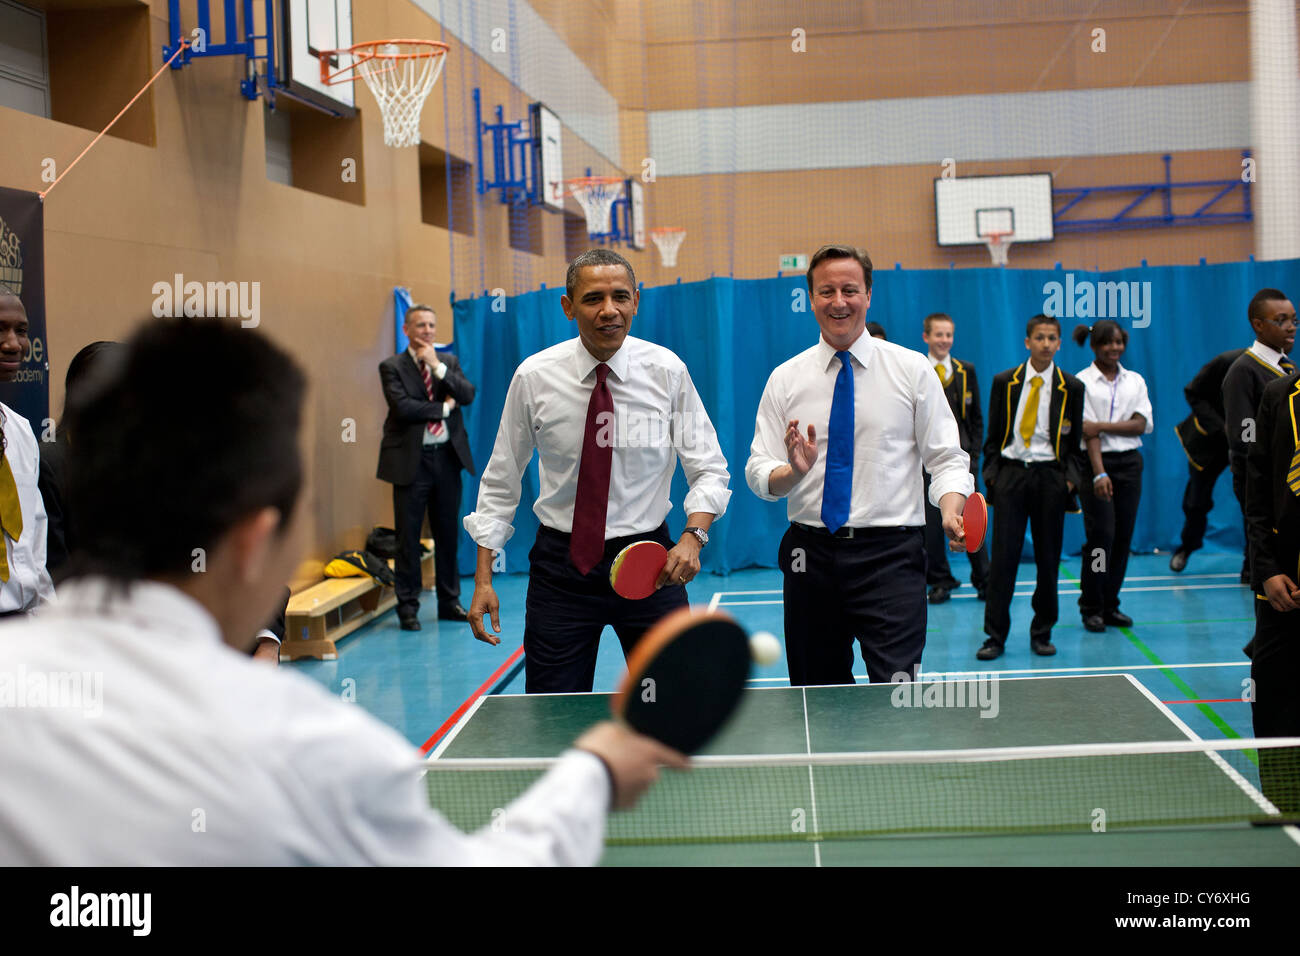 US President Barack Obama and British Prime Minister David Cameron play table tennis with students at Globe Academy - Stock Image